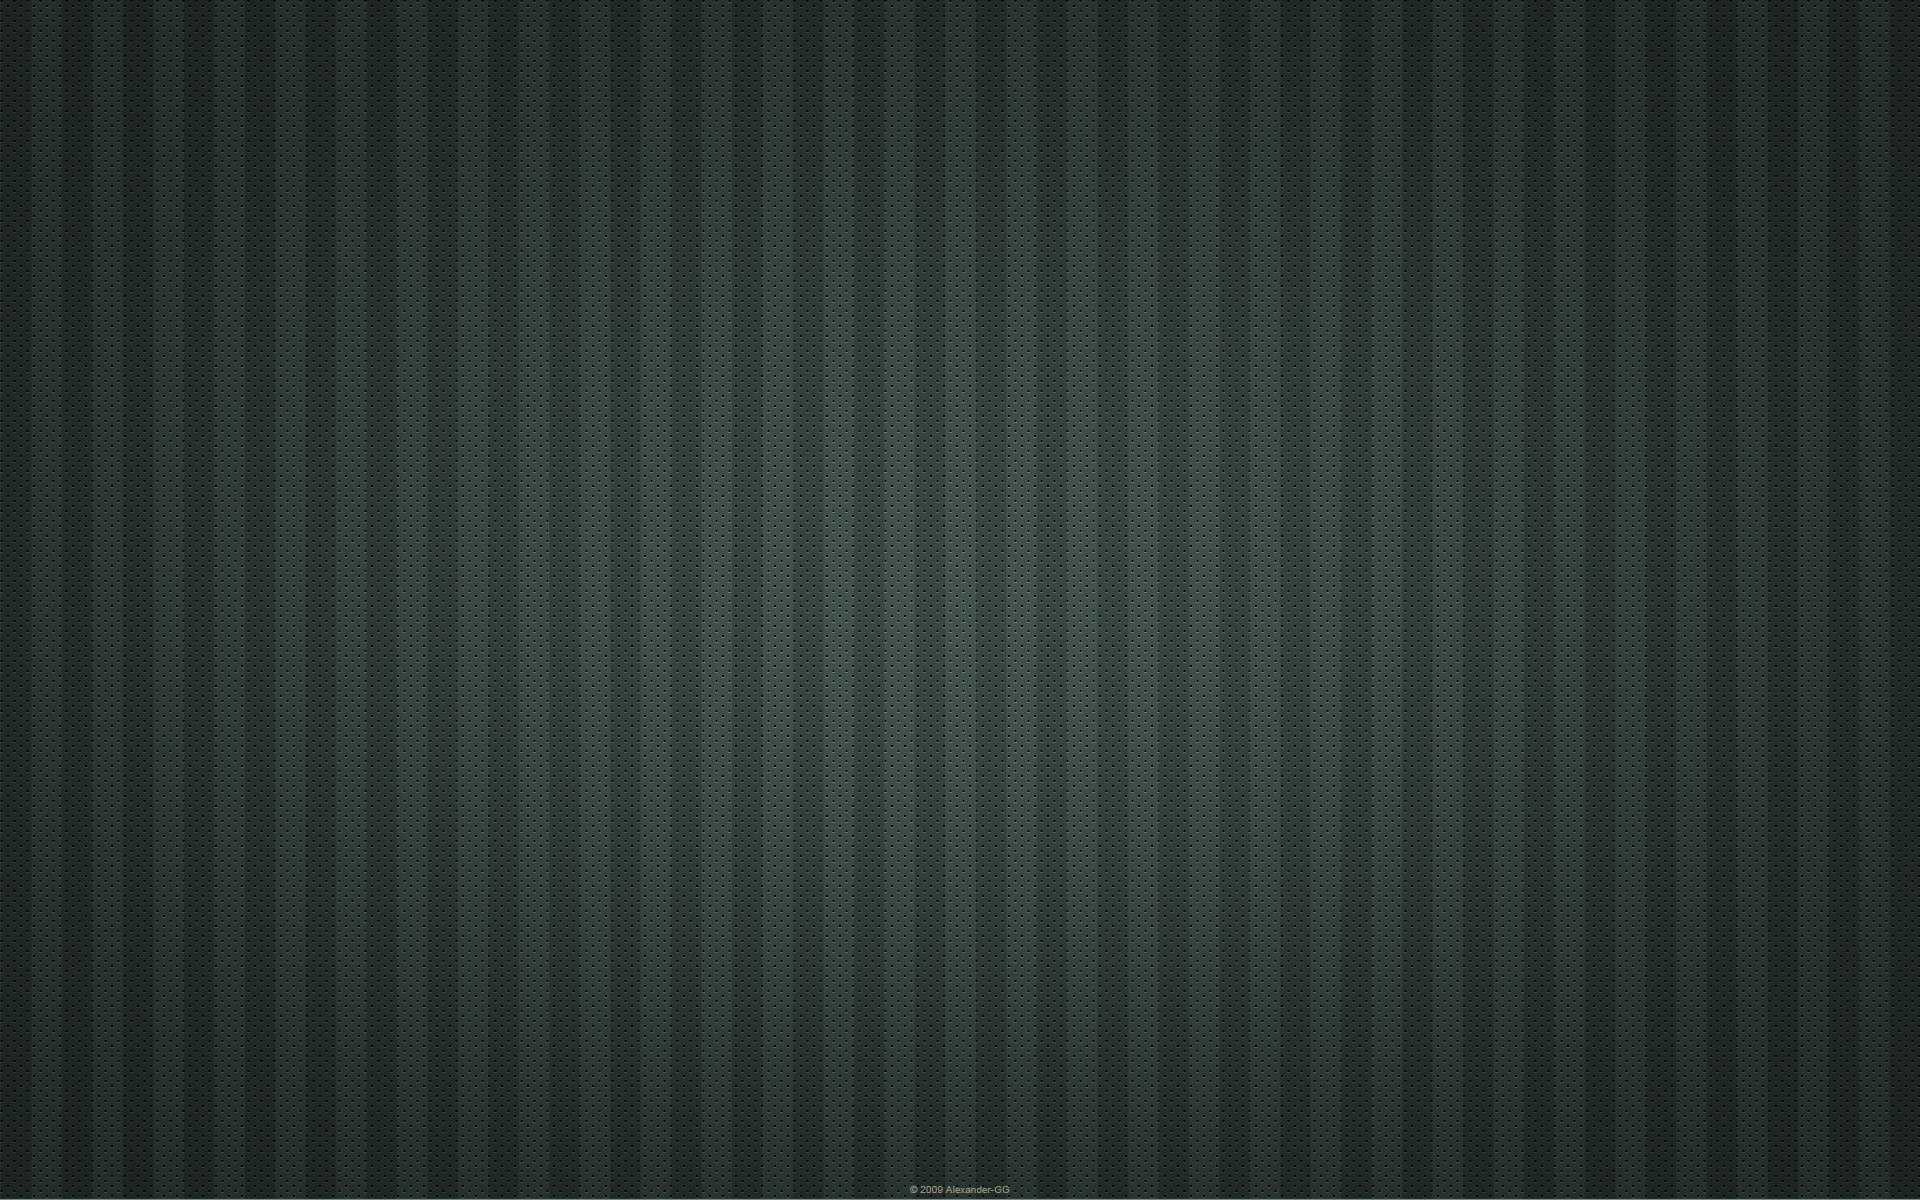 Line Texture Background : Vertical lines floor texture backgrounds